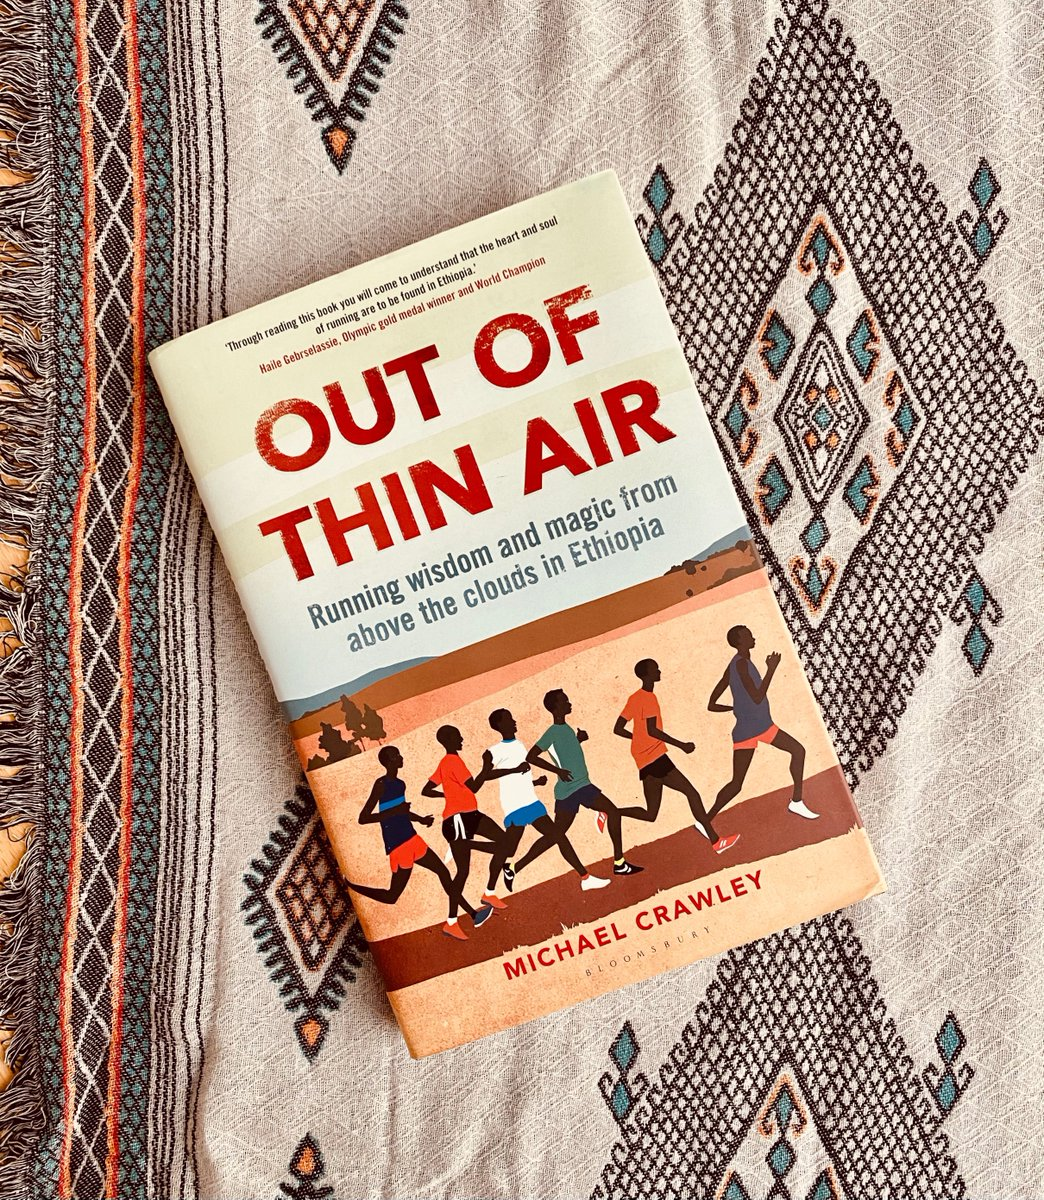 Today is #WorldBookDay! The last book we read on Ethiopia was 'Out Of Thin Air' by @mphcrawley.  By immersing himself in the culture of Ethiopian running, Michael takes you on a journey to discover why #Ethiopia🇪🇹 has some of the world's best long-distance runners.🏃🏾♀️🏃🏾♂️  #WBD2021